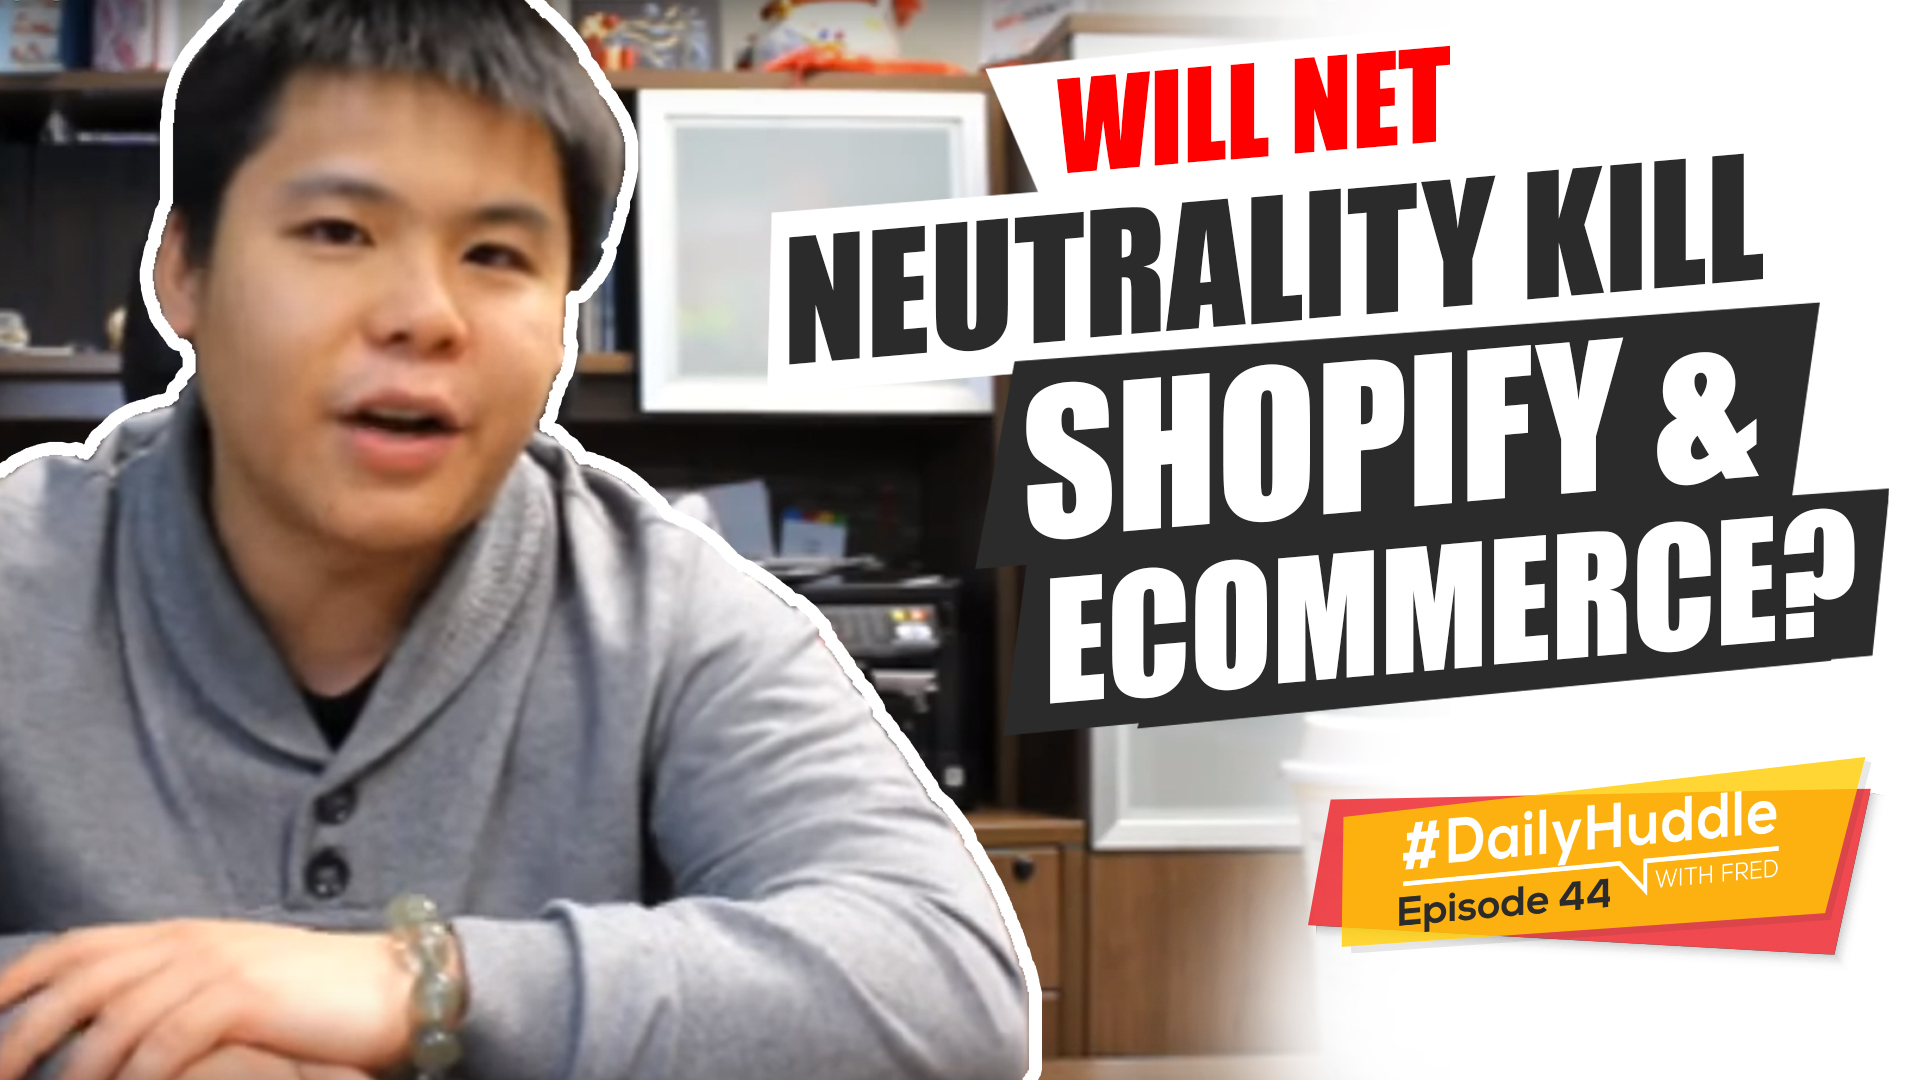 Daily Huddle - Ep 44 | Will Net Neutrality Kill Shopify & eCommerce?